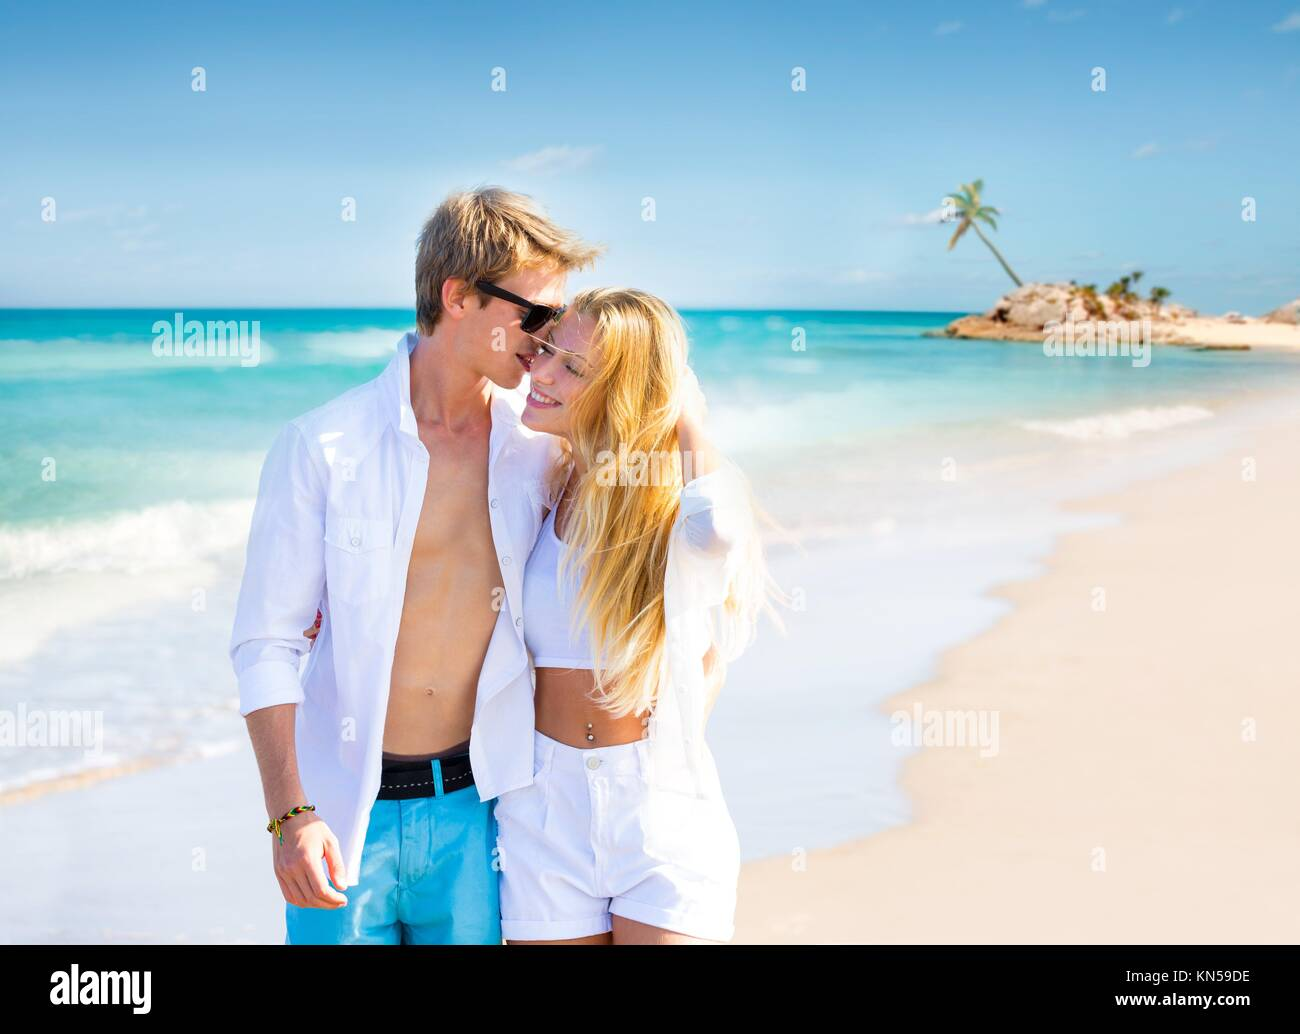 Blond teen couple walking together in the tropical beach at Caribbean sea in Mexico photo mount. - Stock Image